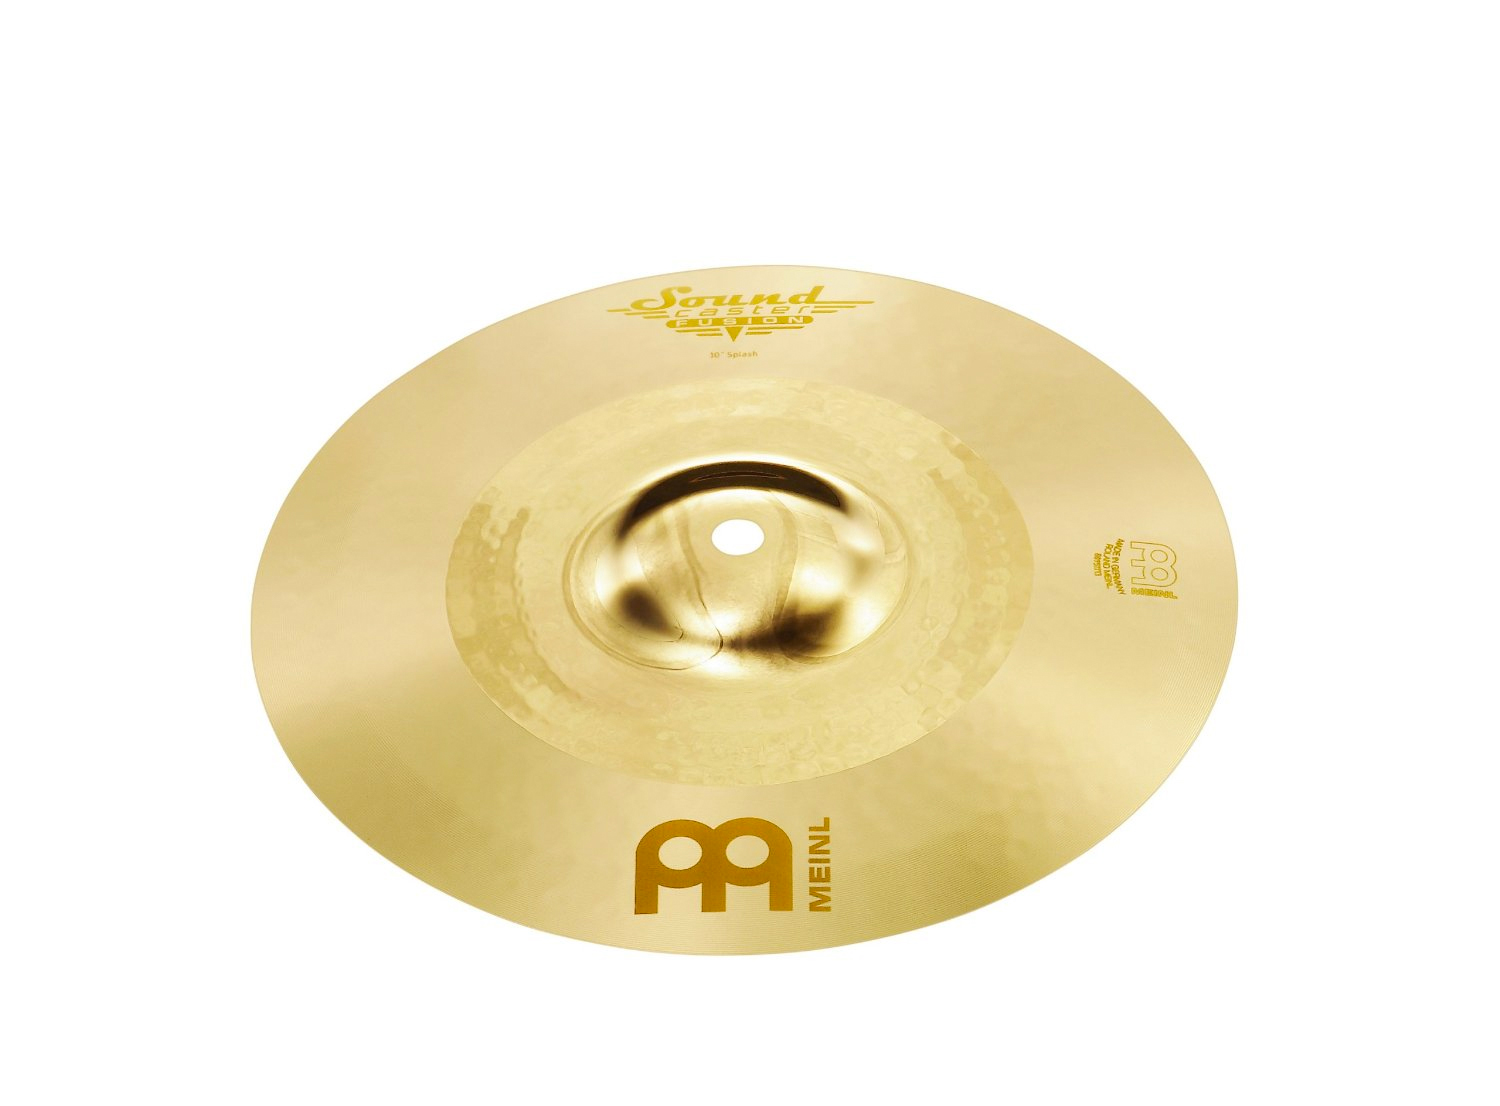 "Meinl SF8S 8"" Soundcaster Fusion Splash Cymbal by Meinl"